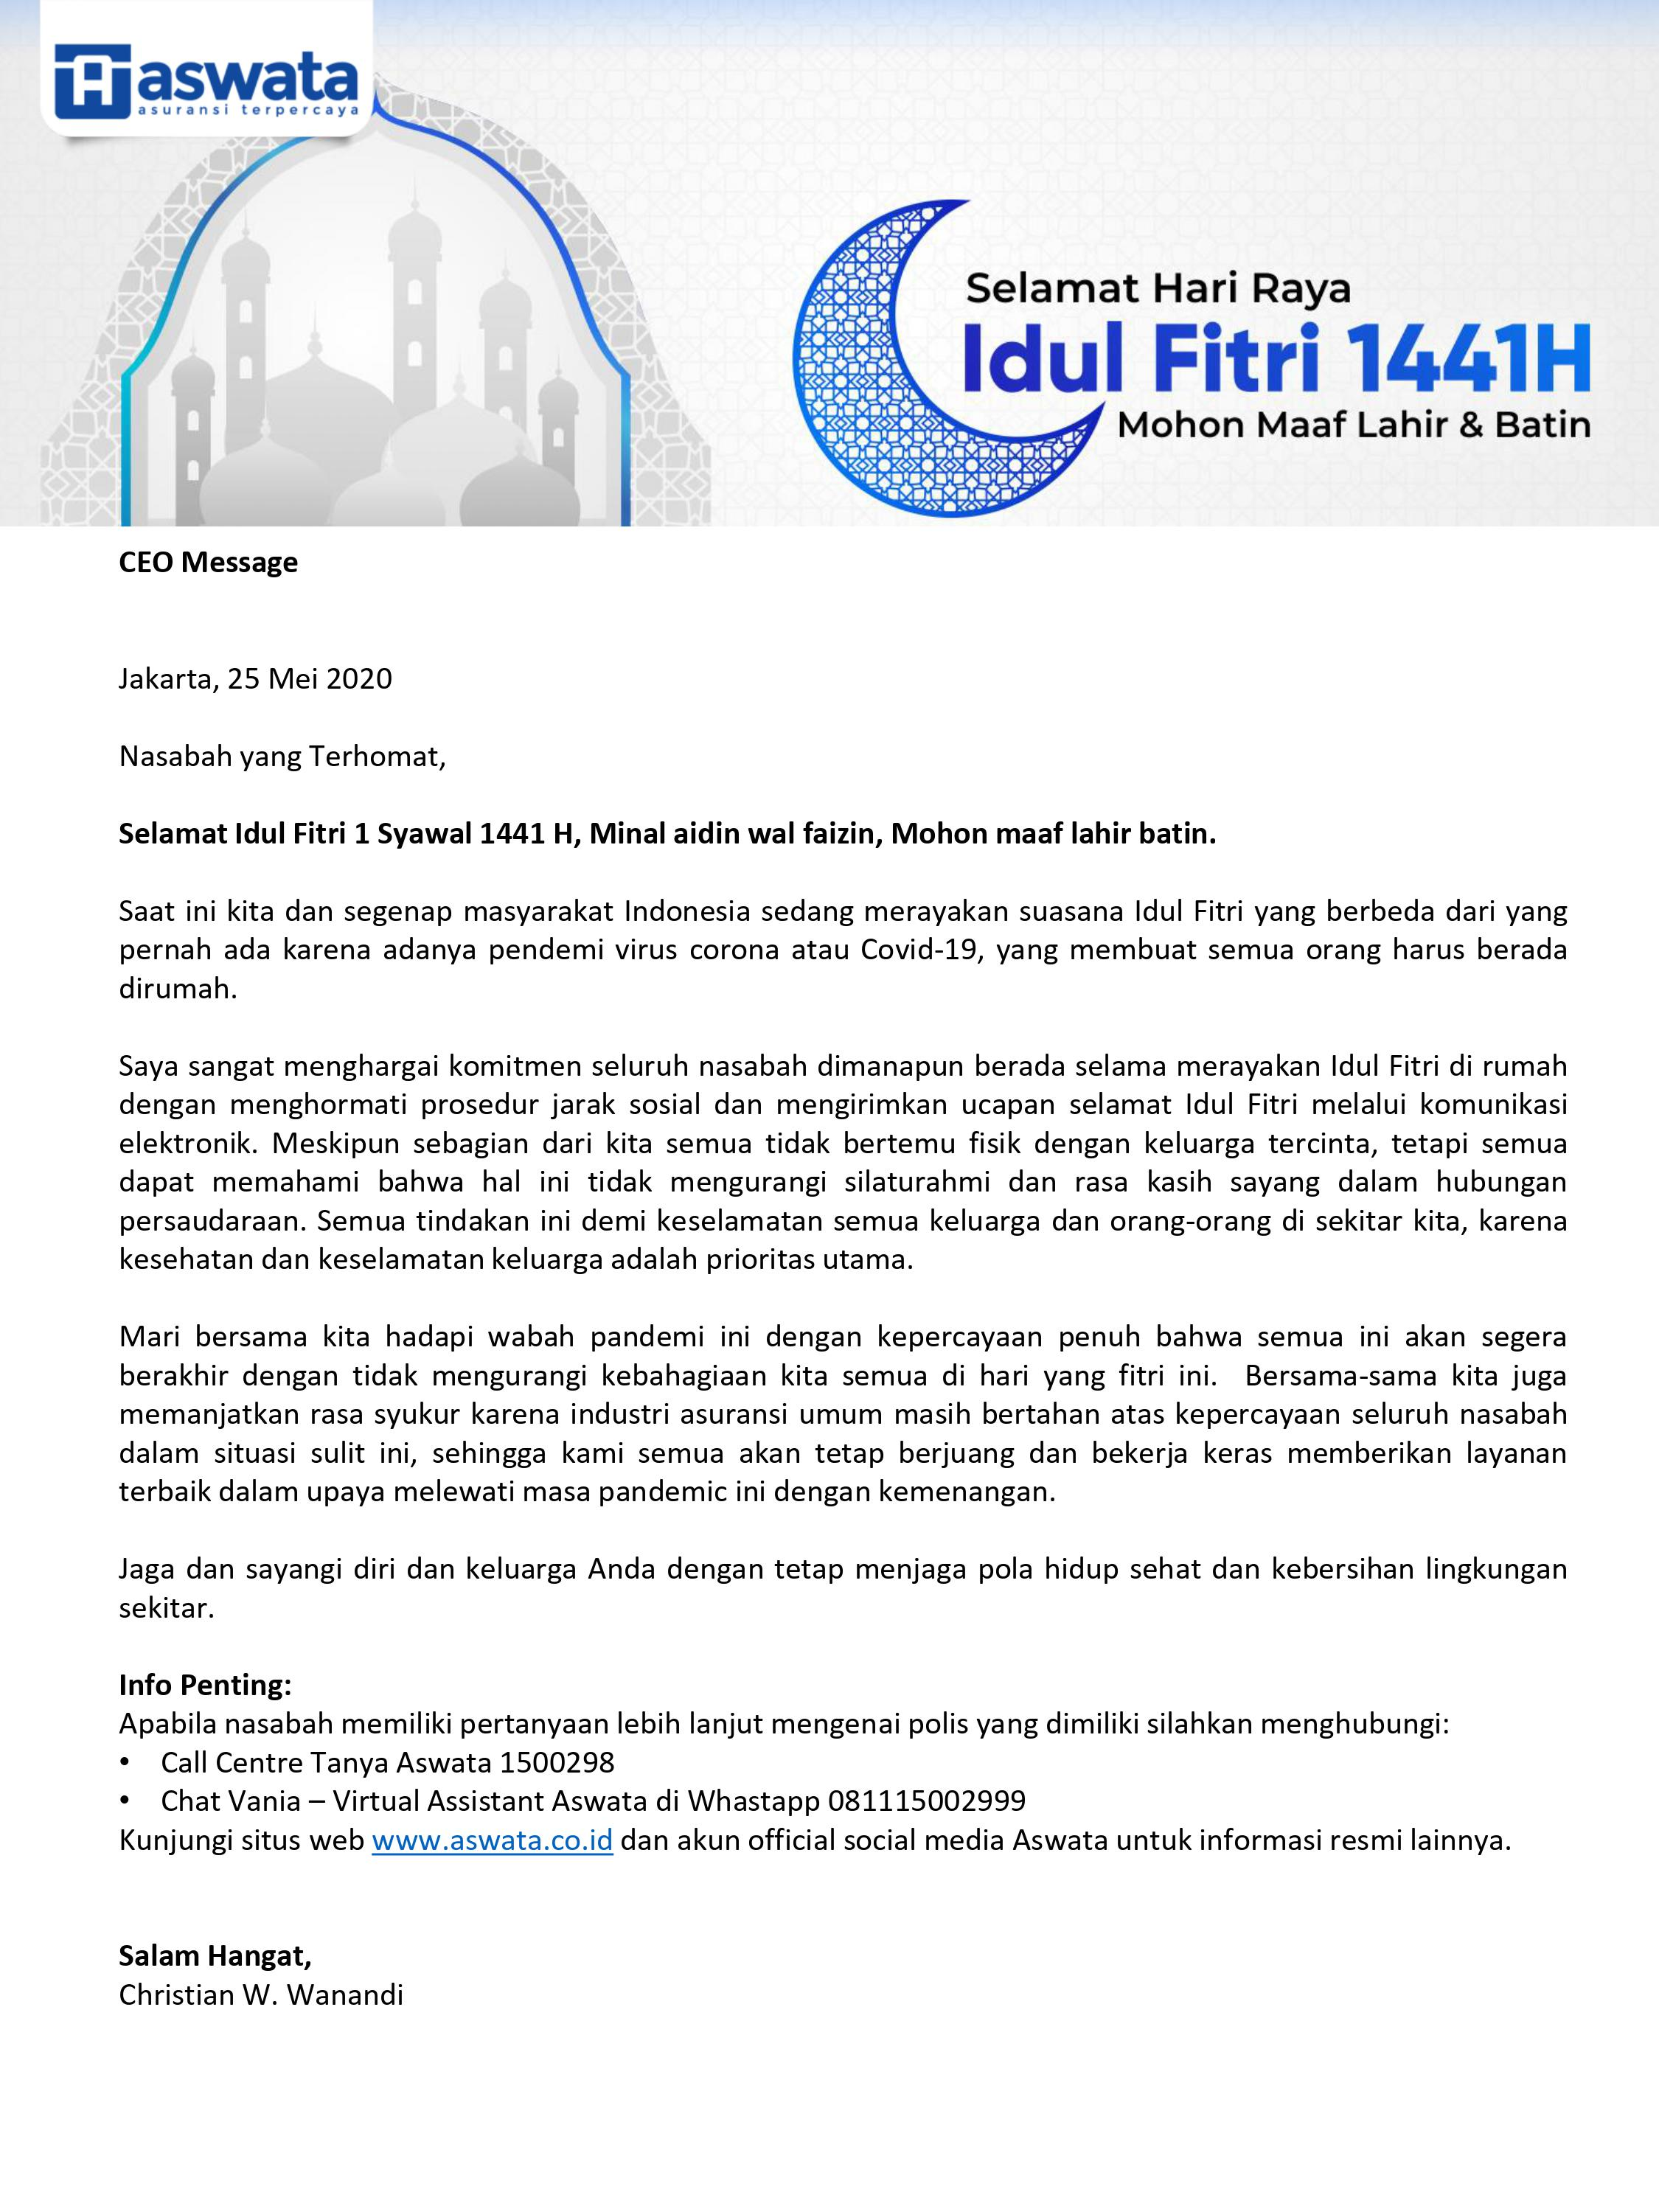 CEO Message IdulFitri Eksternal